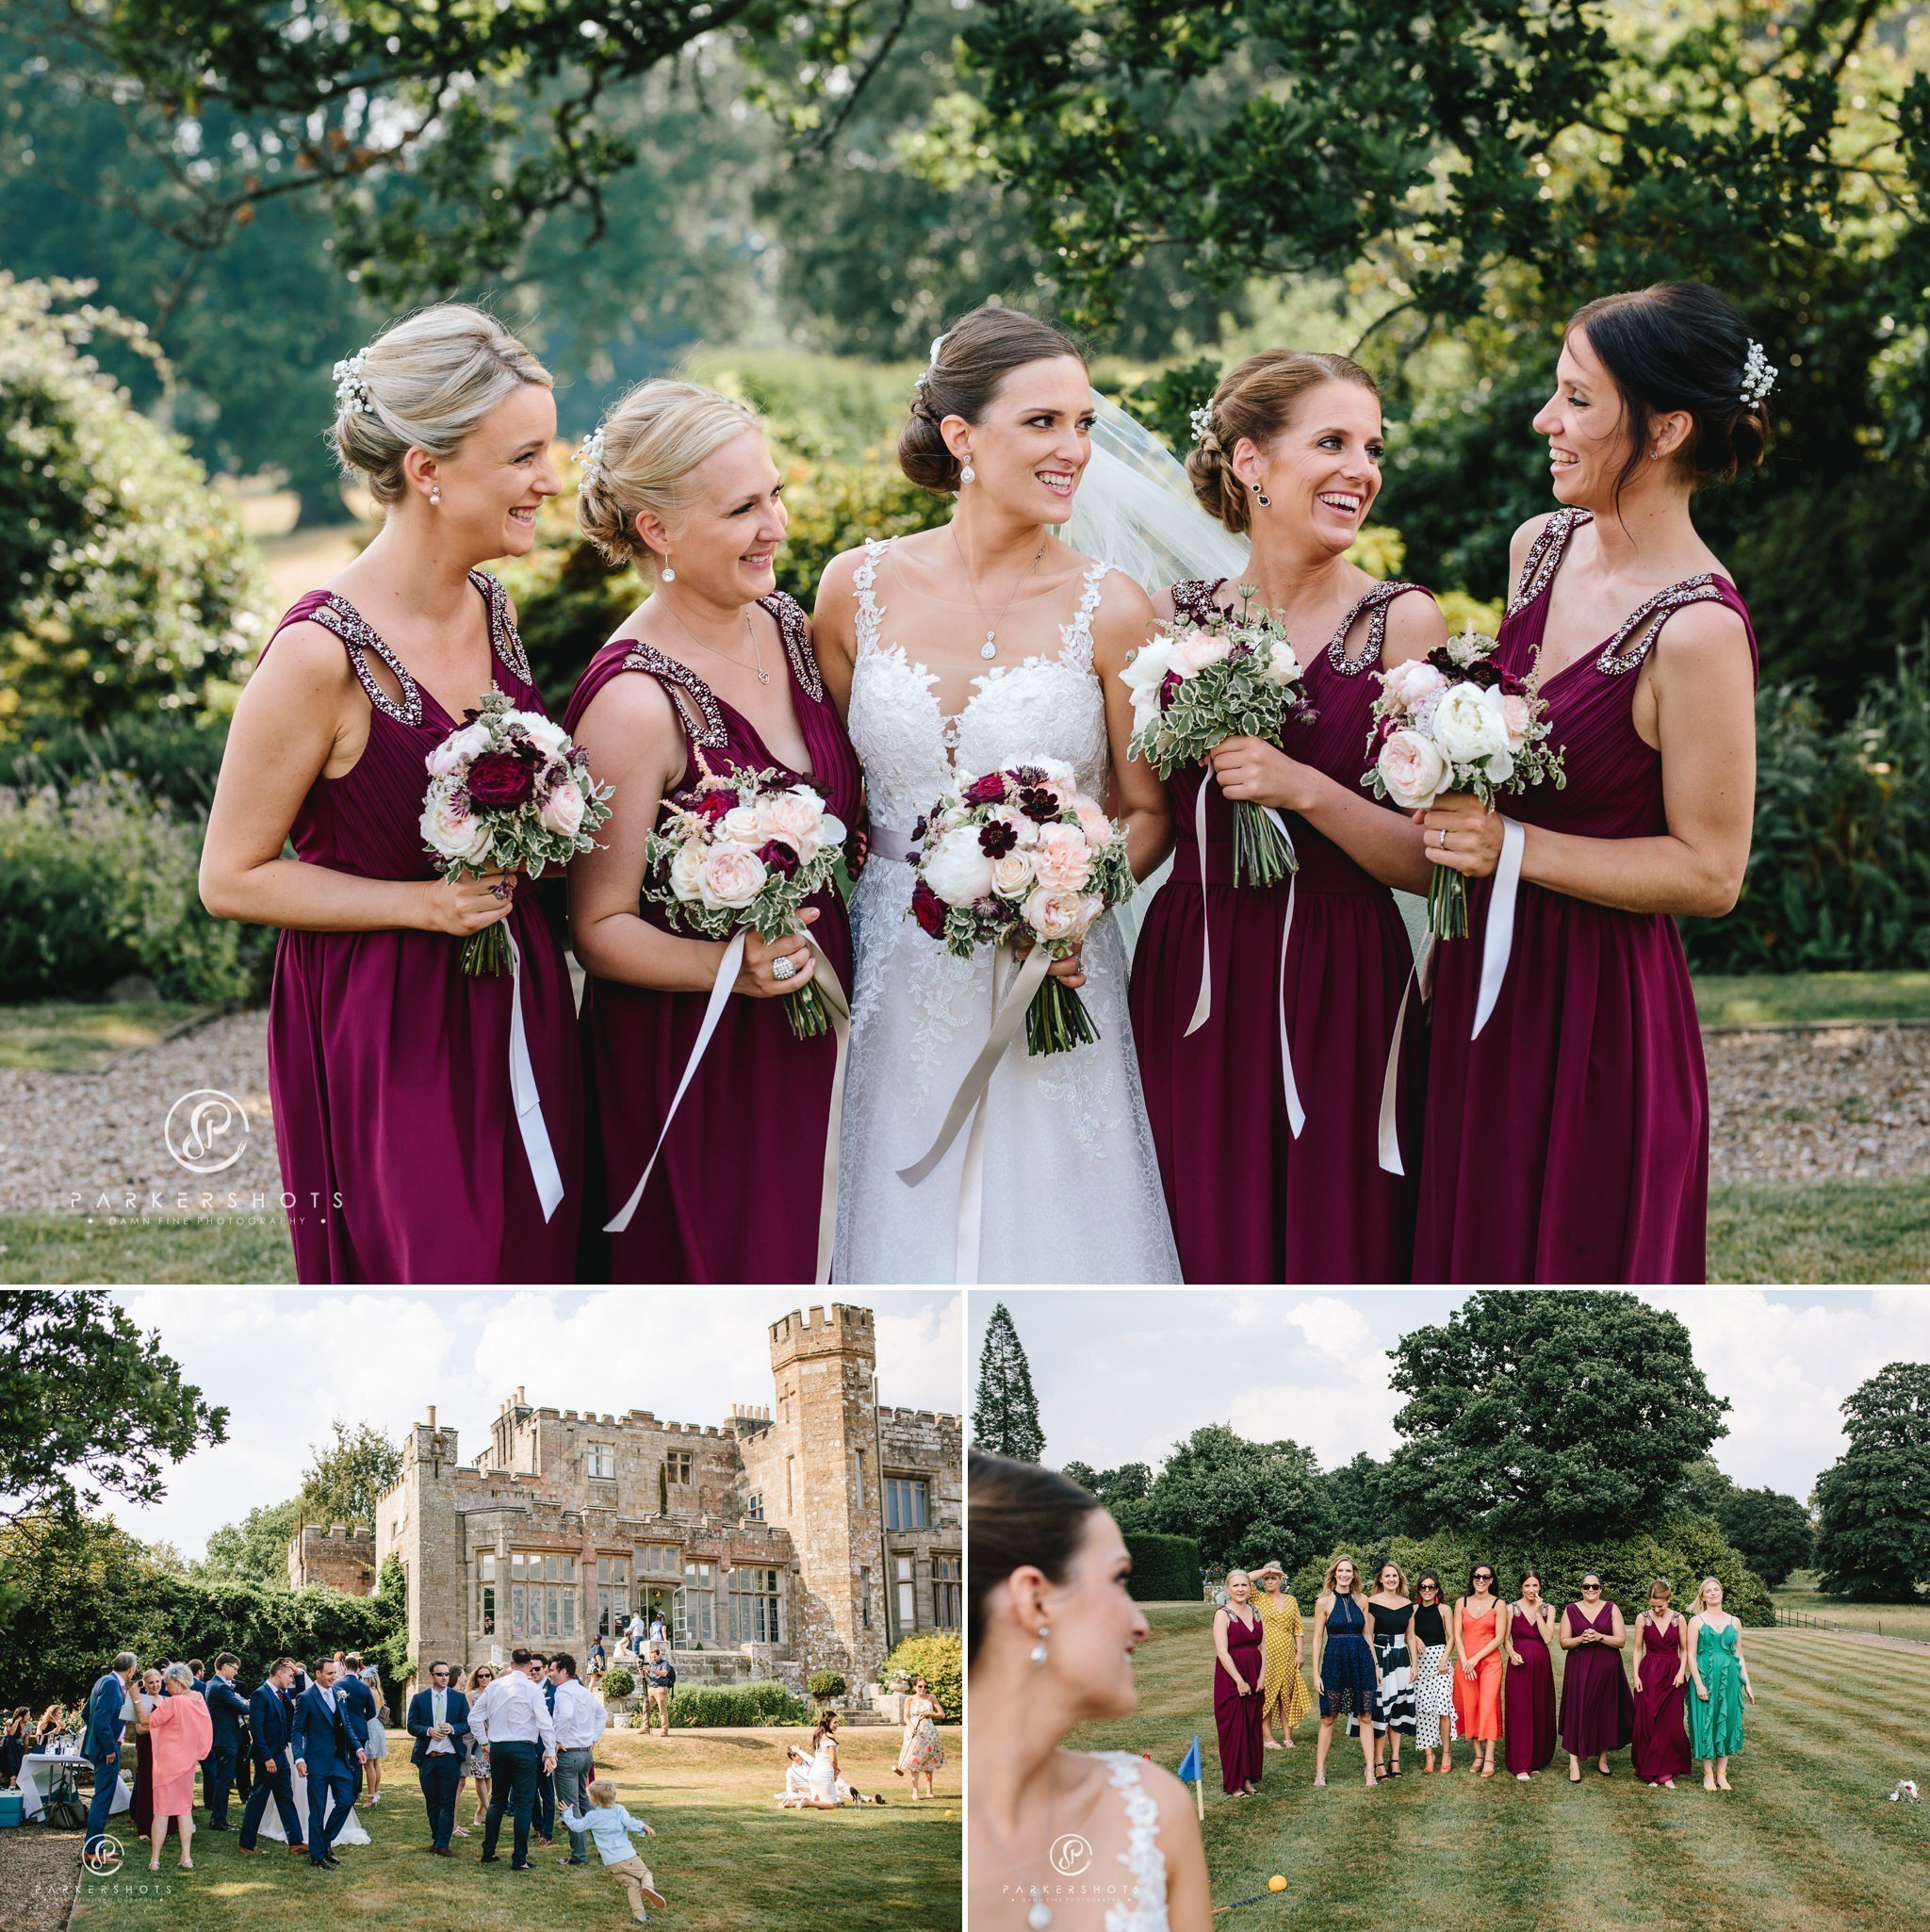 Wadhurst Castle Wedding Photographer - The bridesmaids